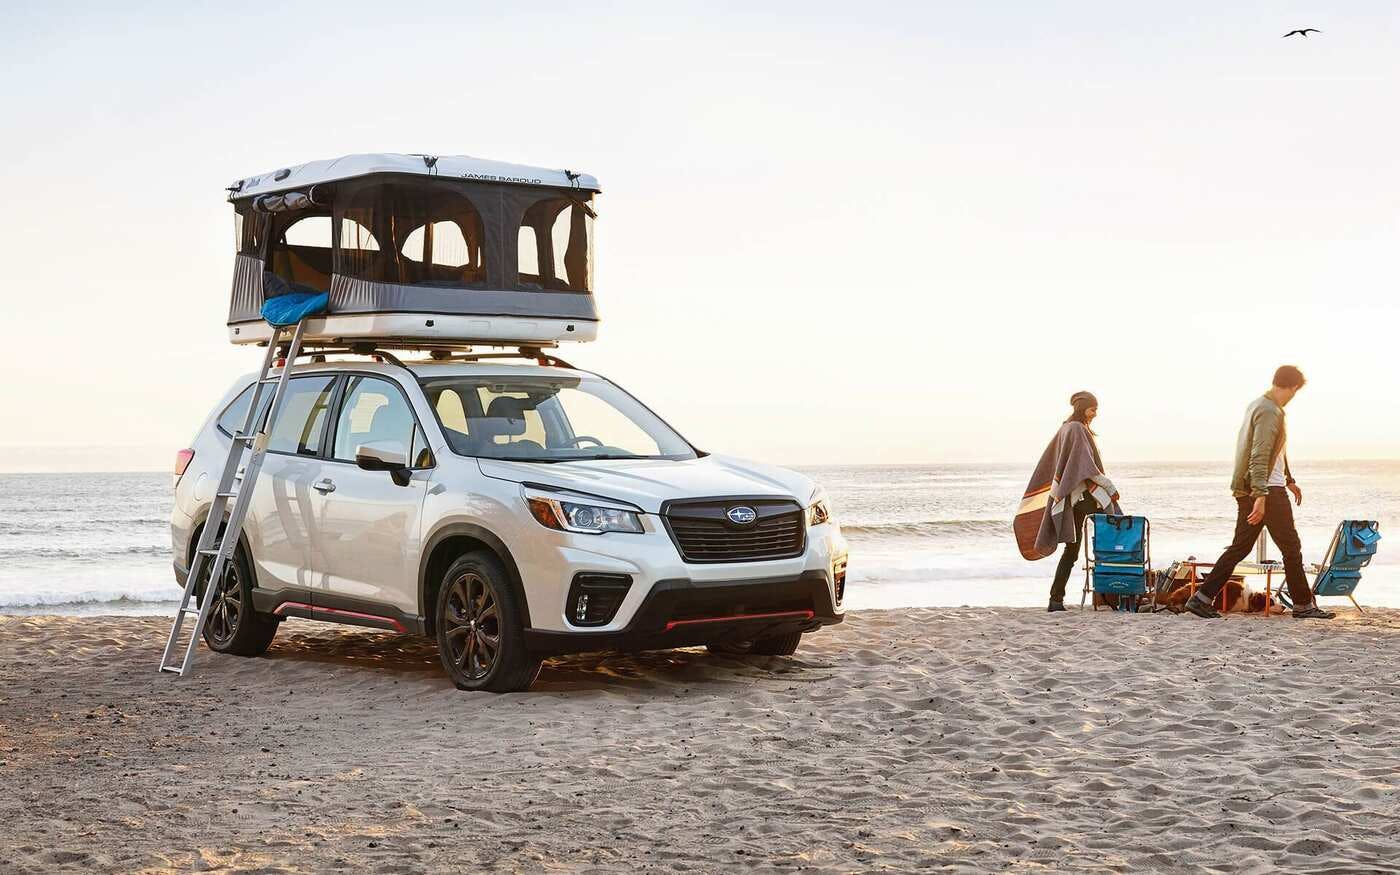 2019 Subaru Forester Comparisons, Reviews & Pictures | TrueCar